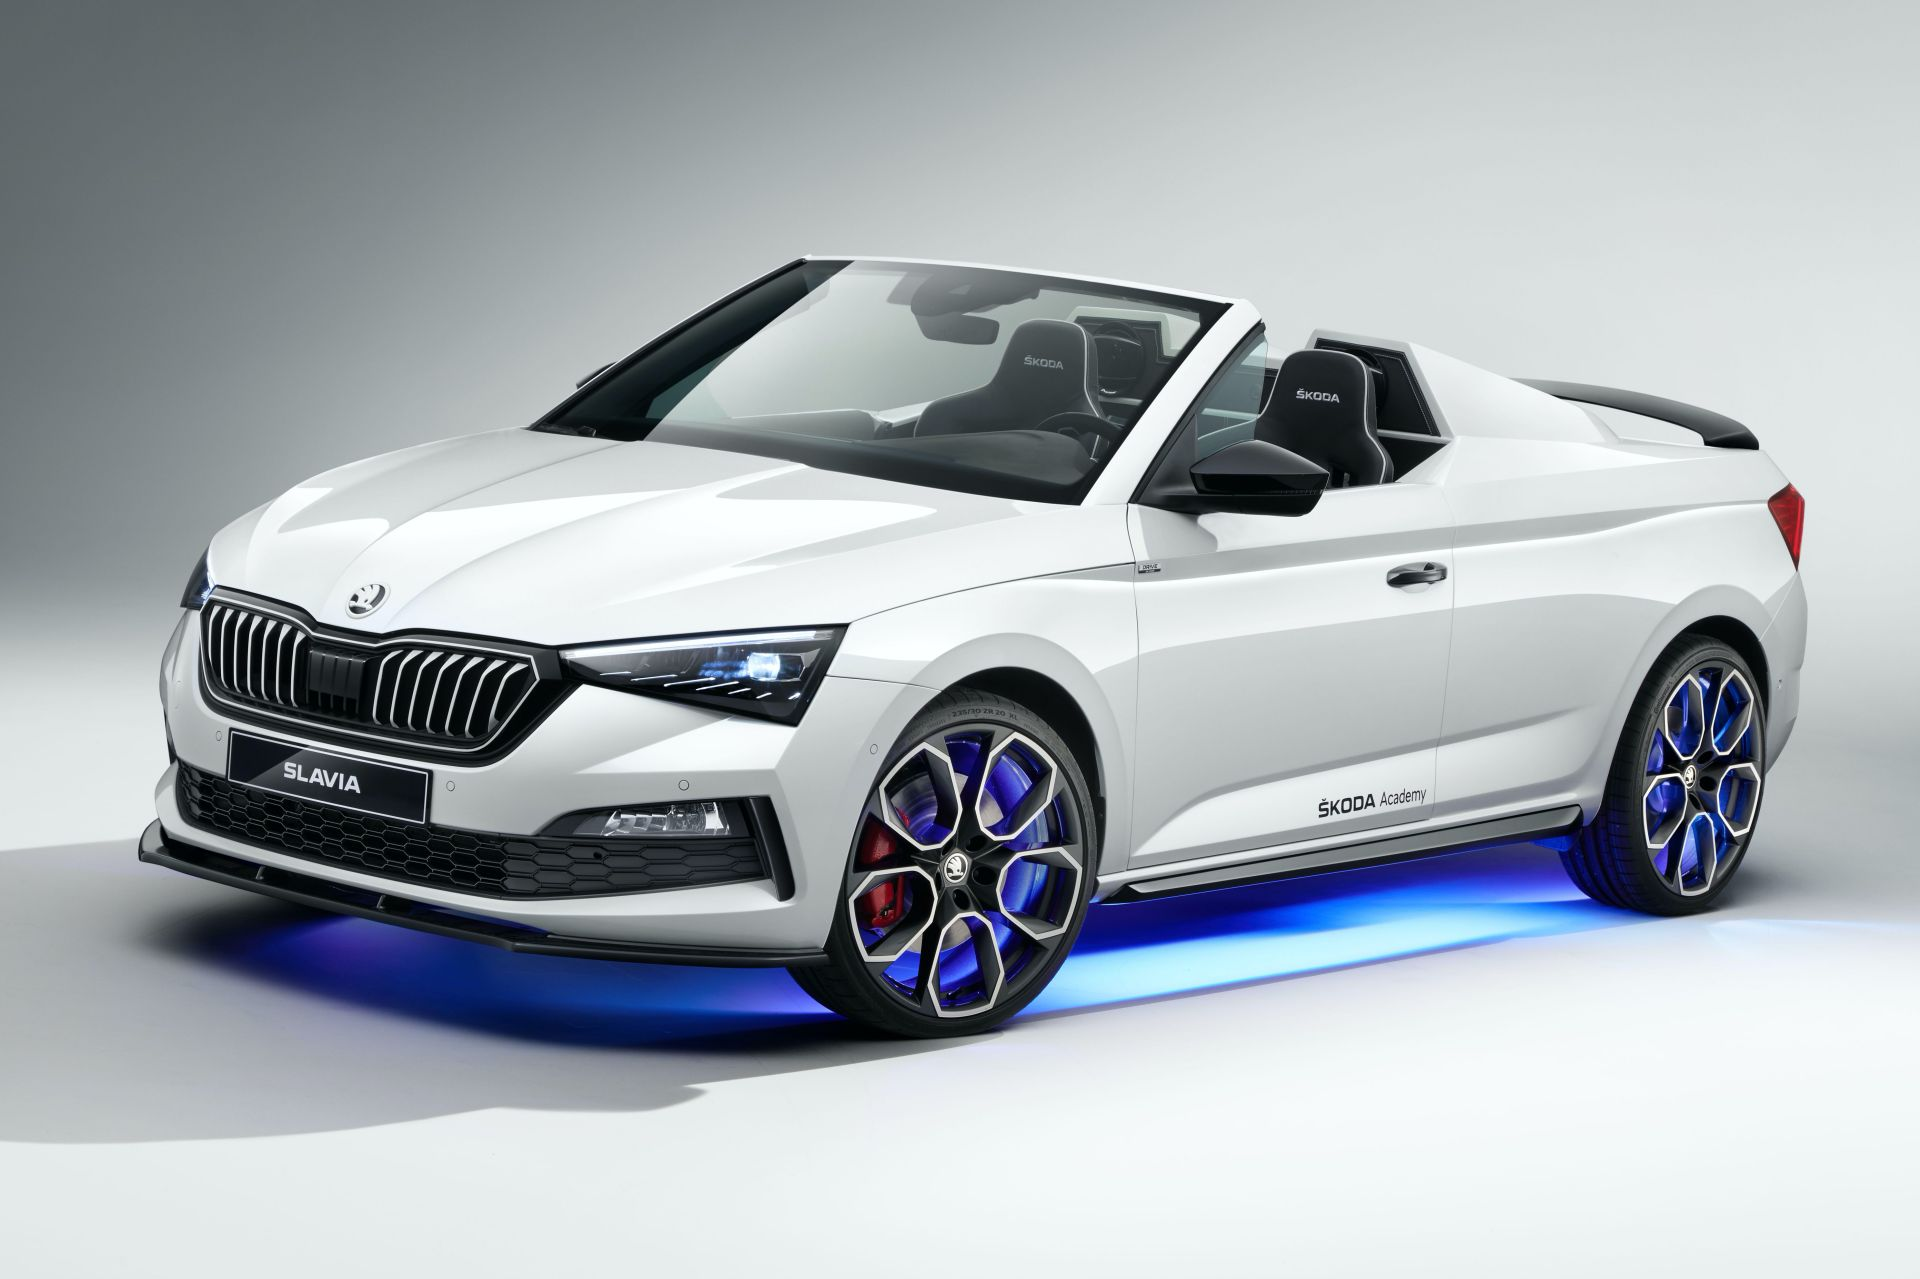 Skoda-Slavia-concept-car-built-by-students-6